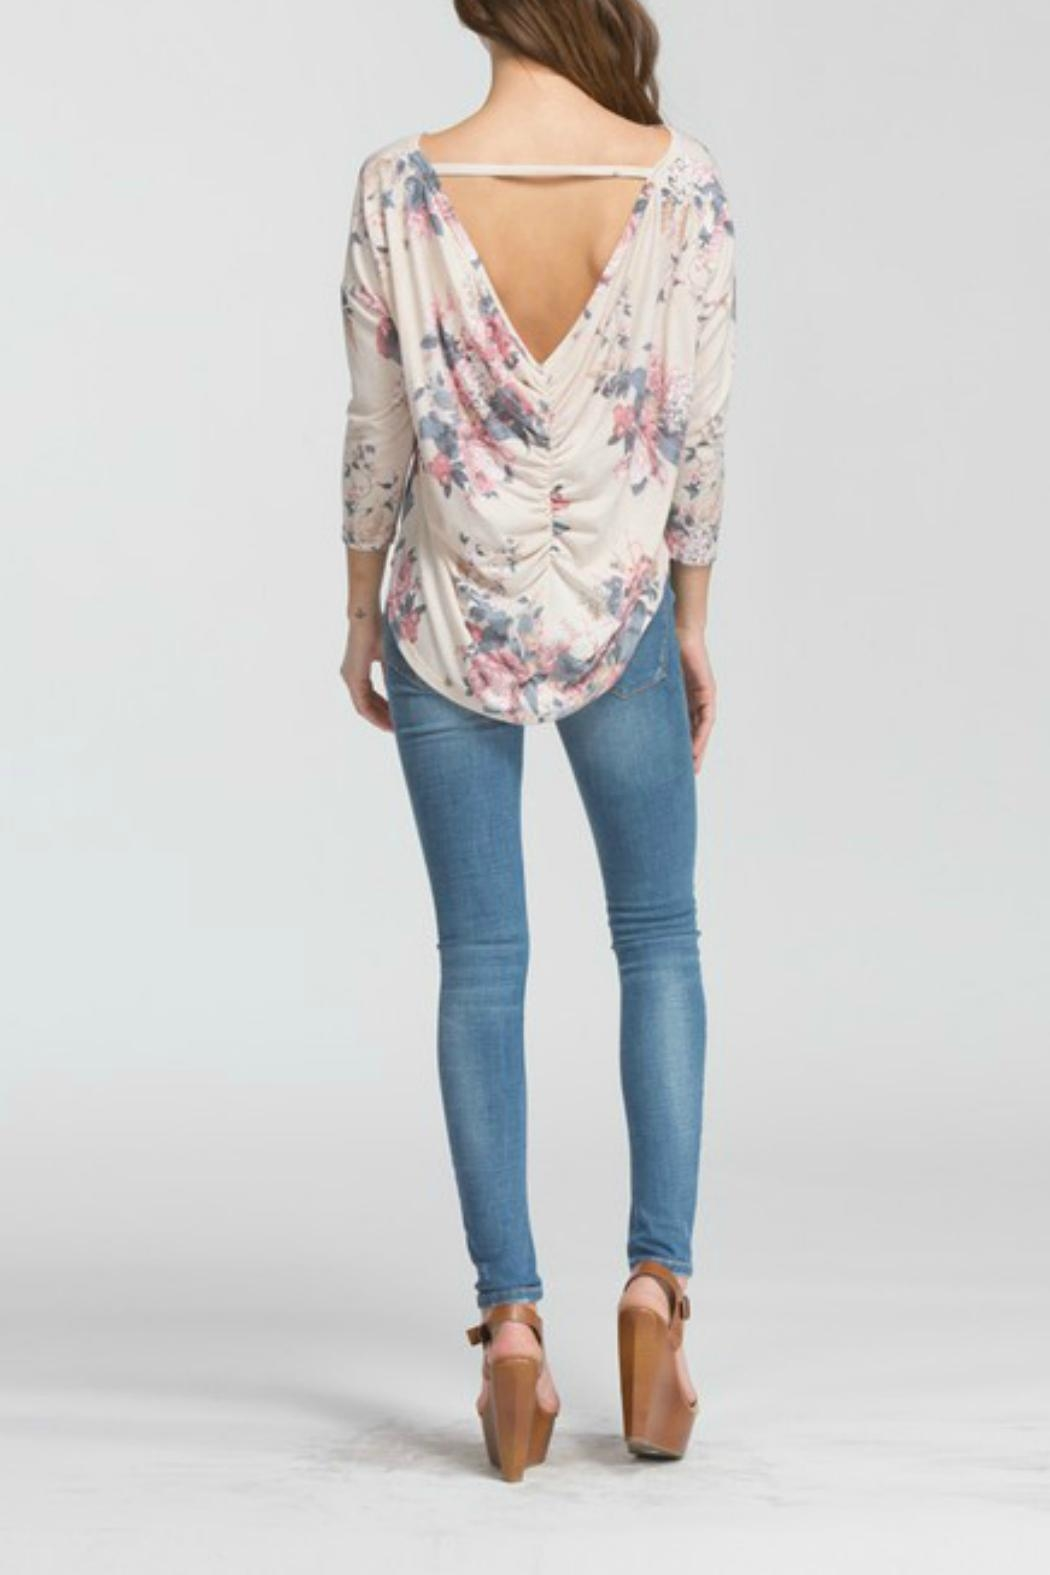 Cherish Lina Floral Top - Back Cropped Image